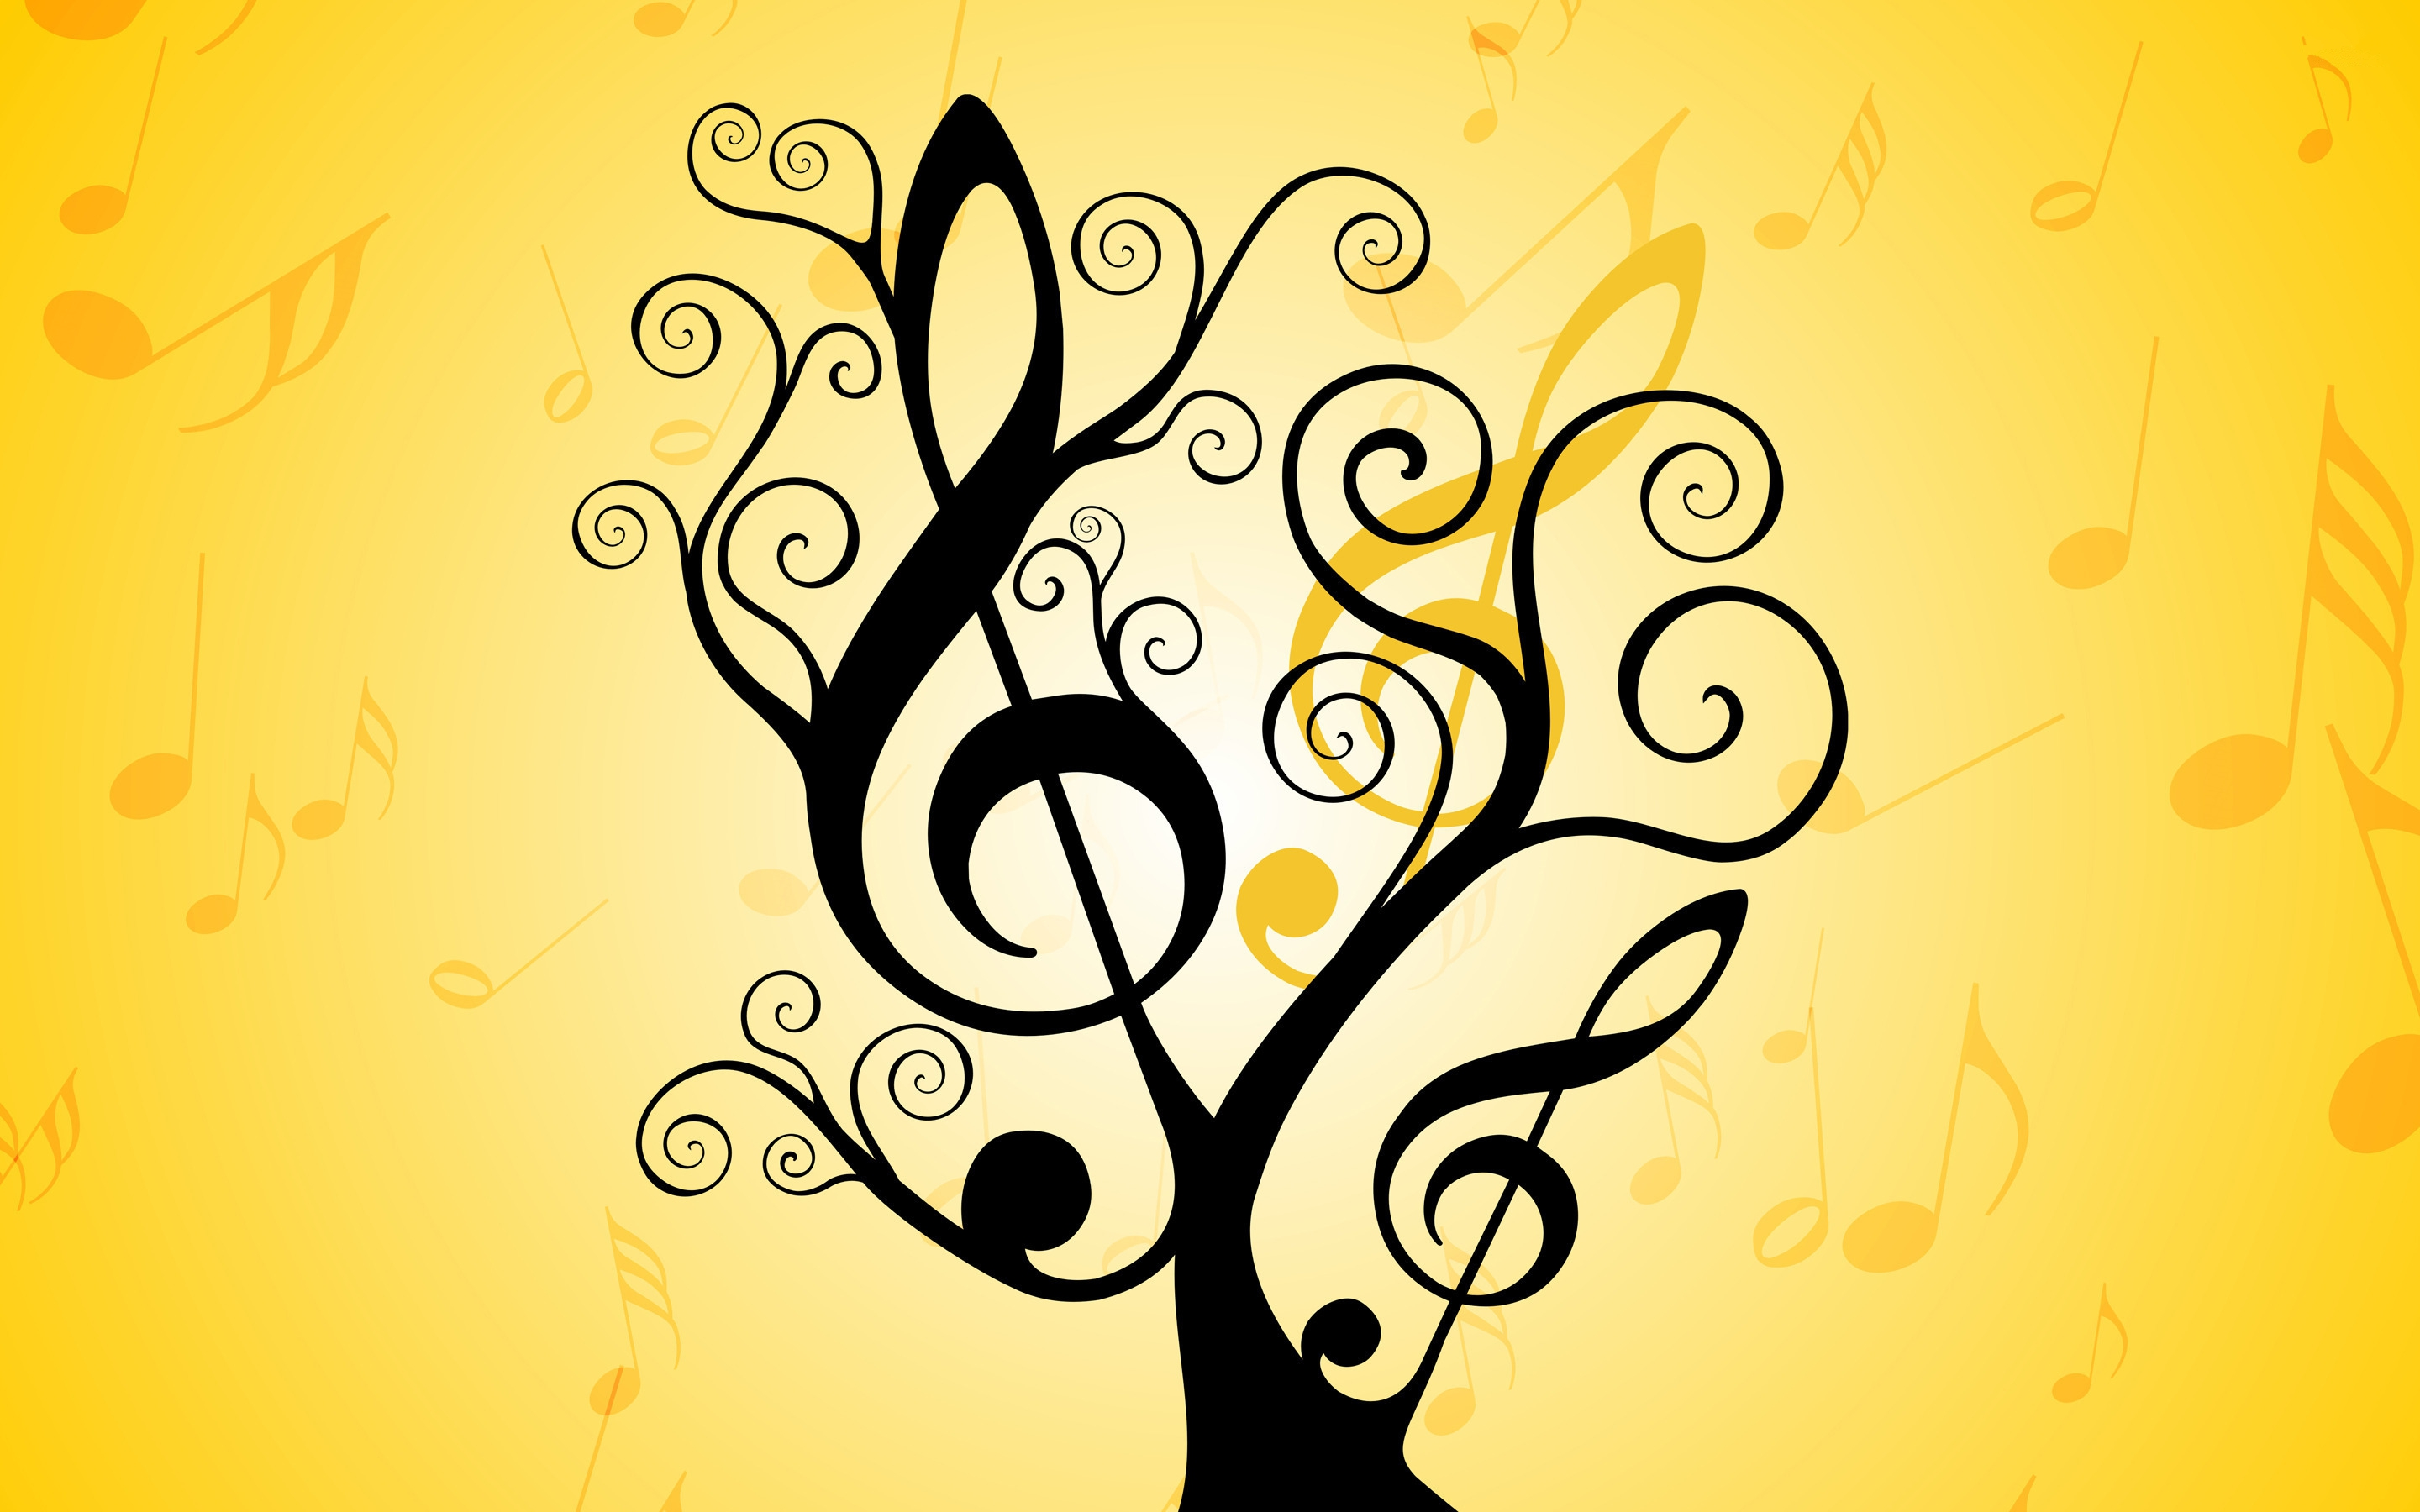 Musical Note Images | Free download best Musical Note Images on ...